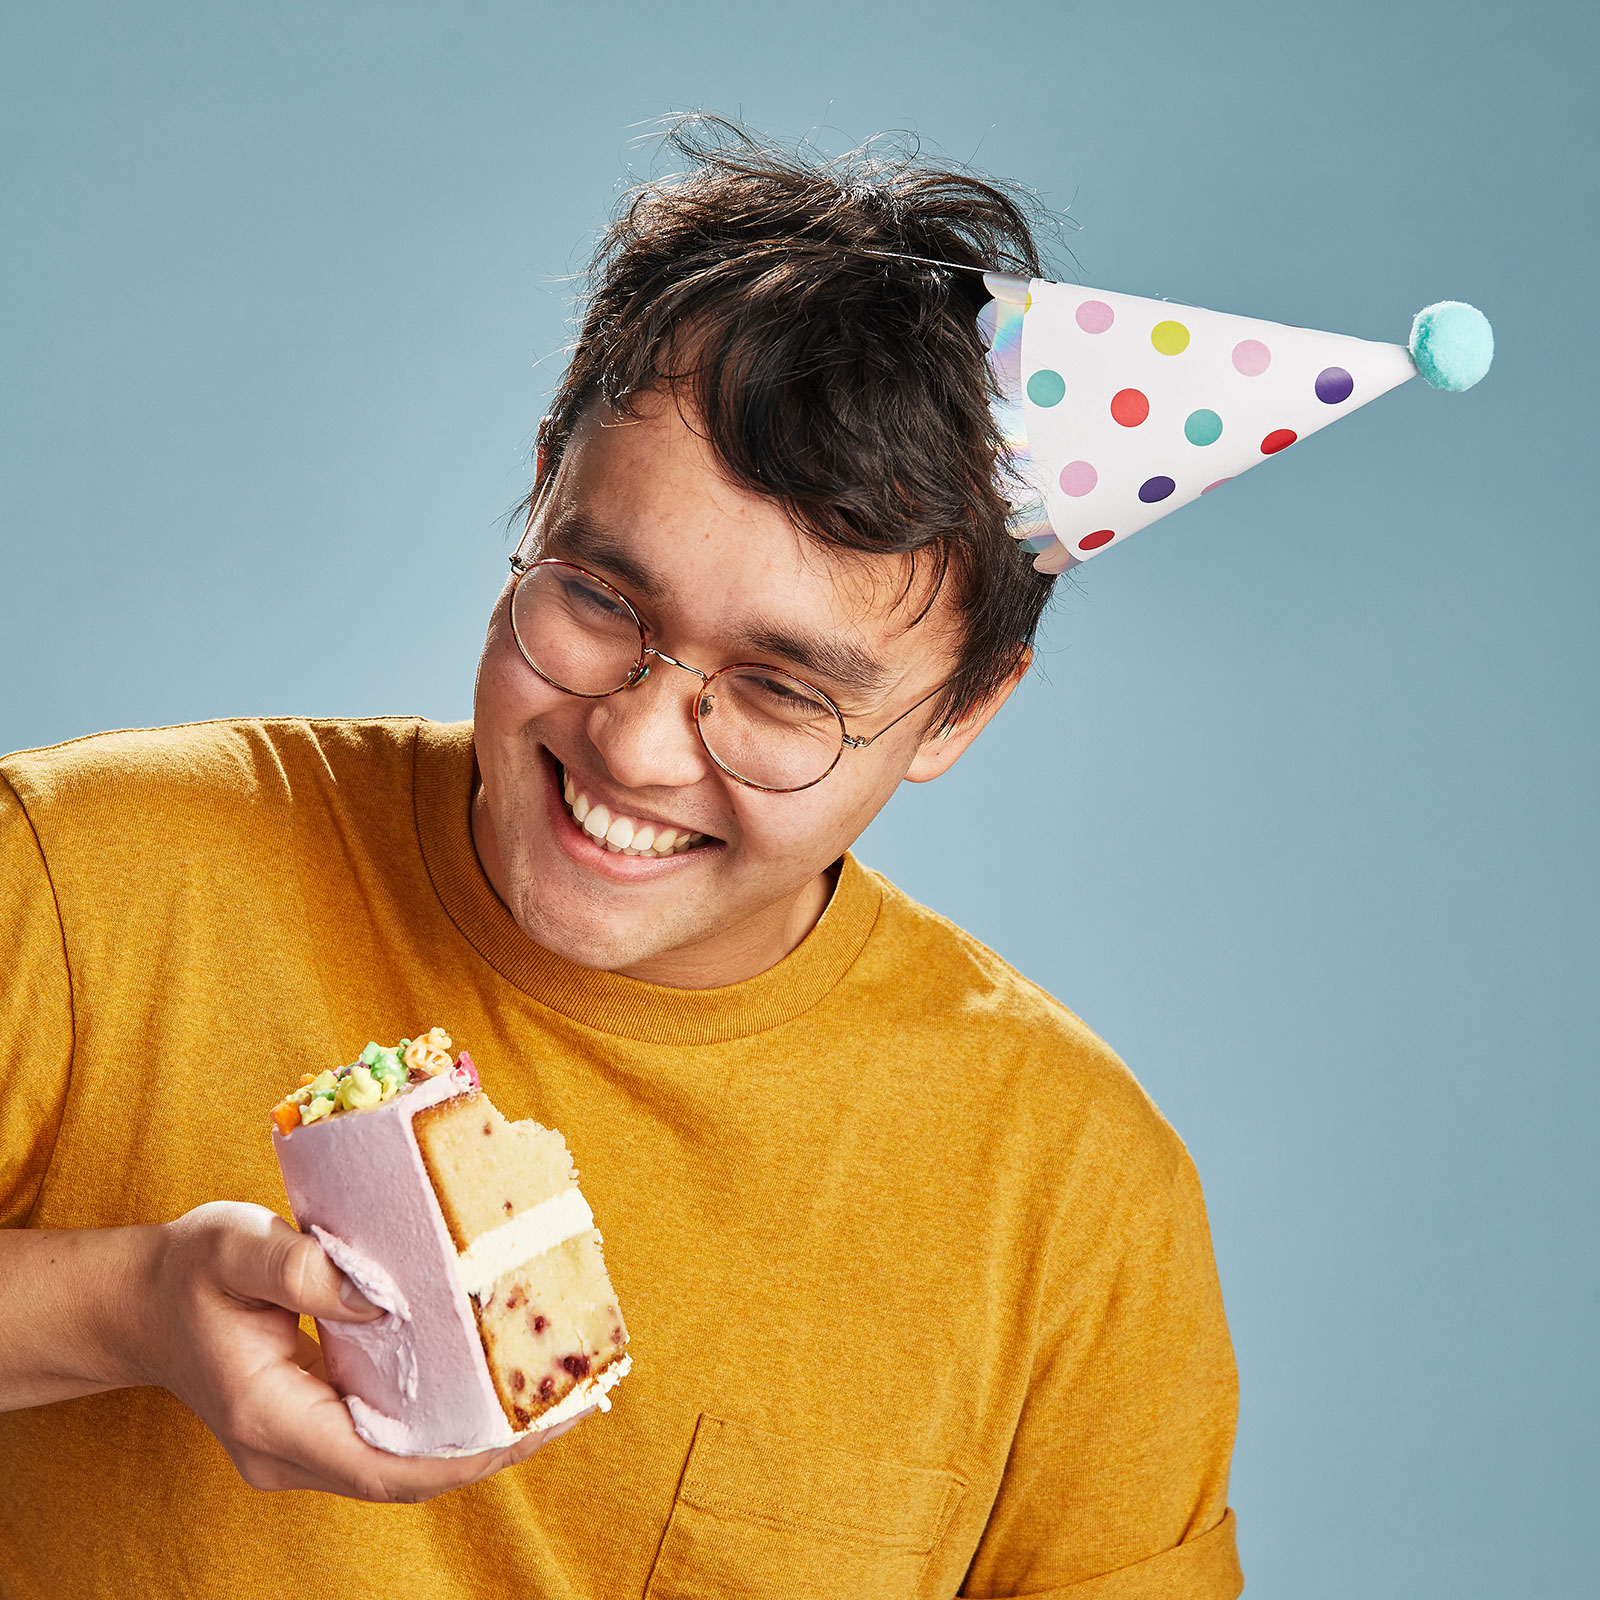 A photo of me in a yellow shirt, looking happy, with a slice of cake in my hand.